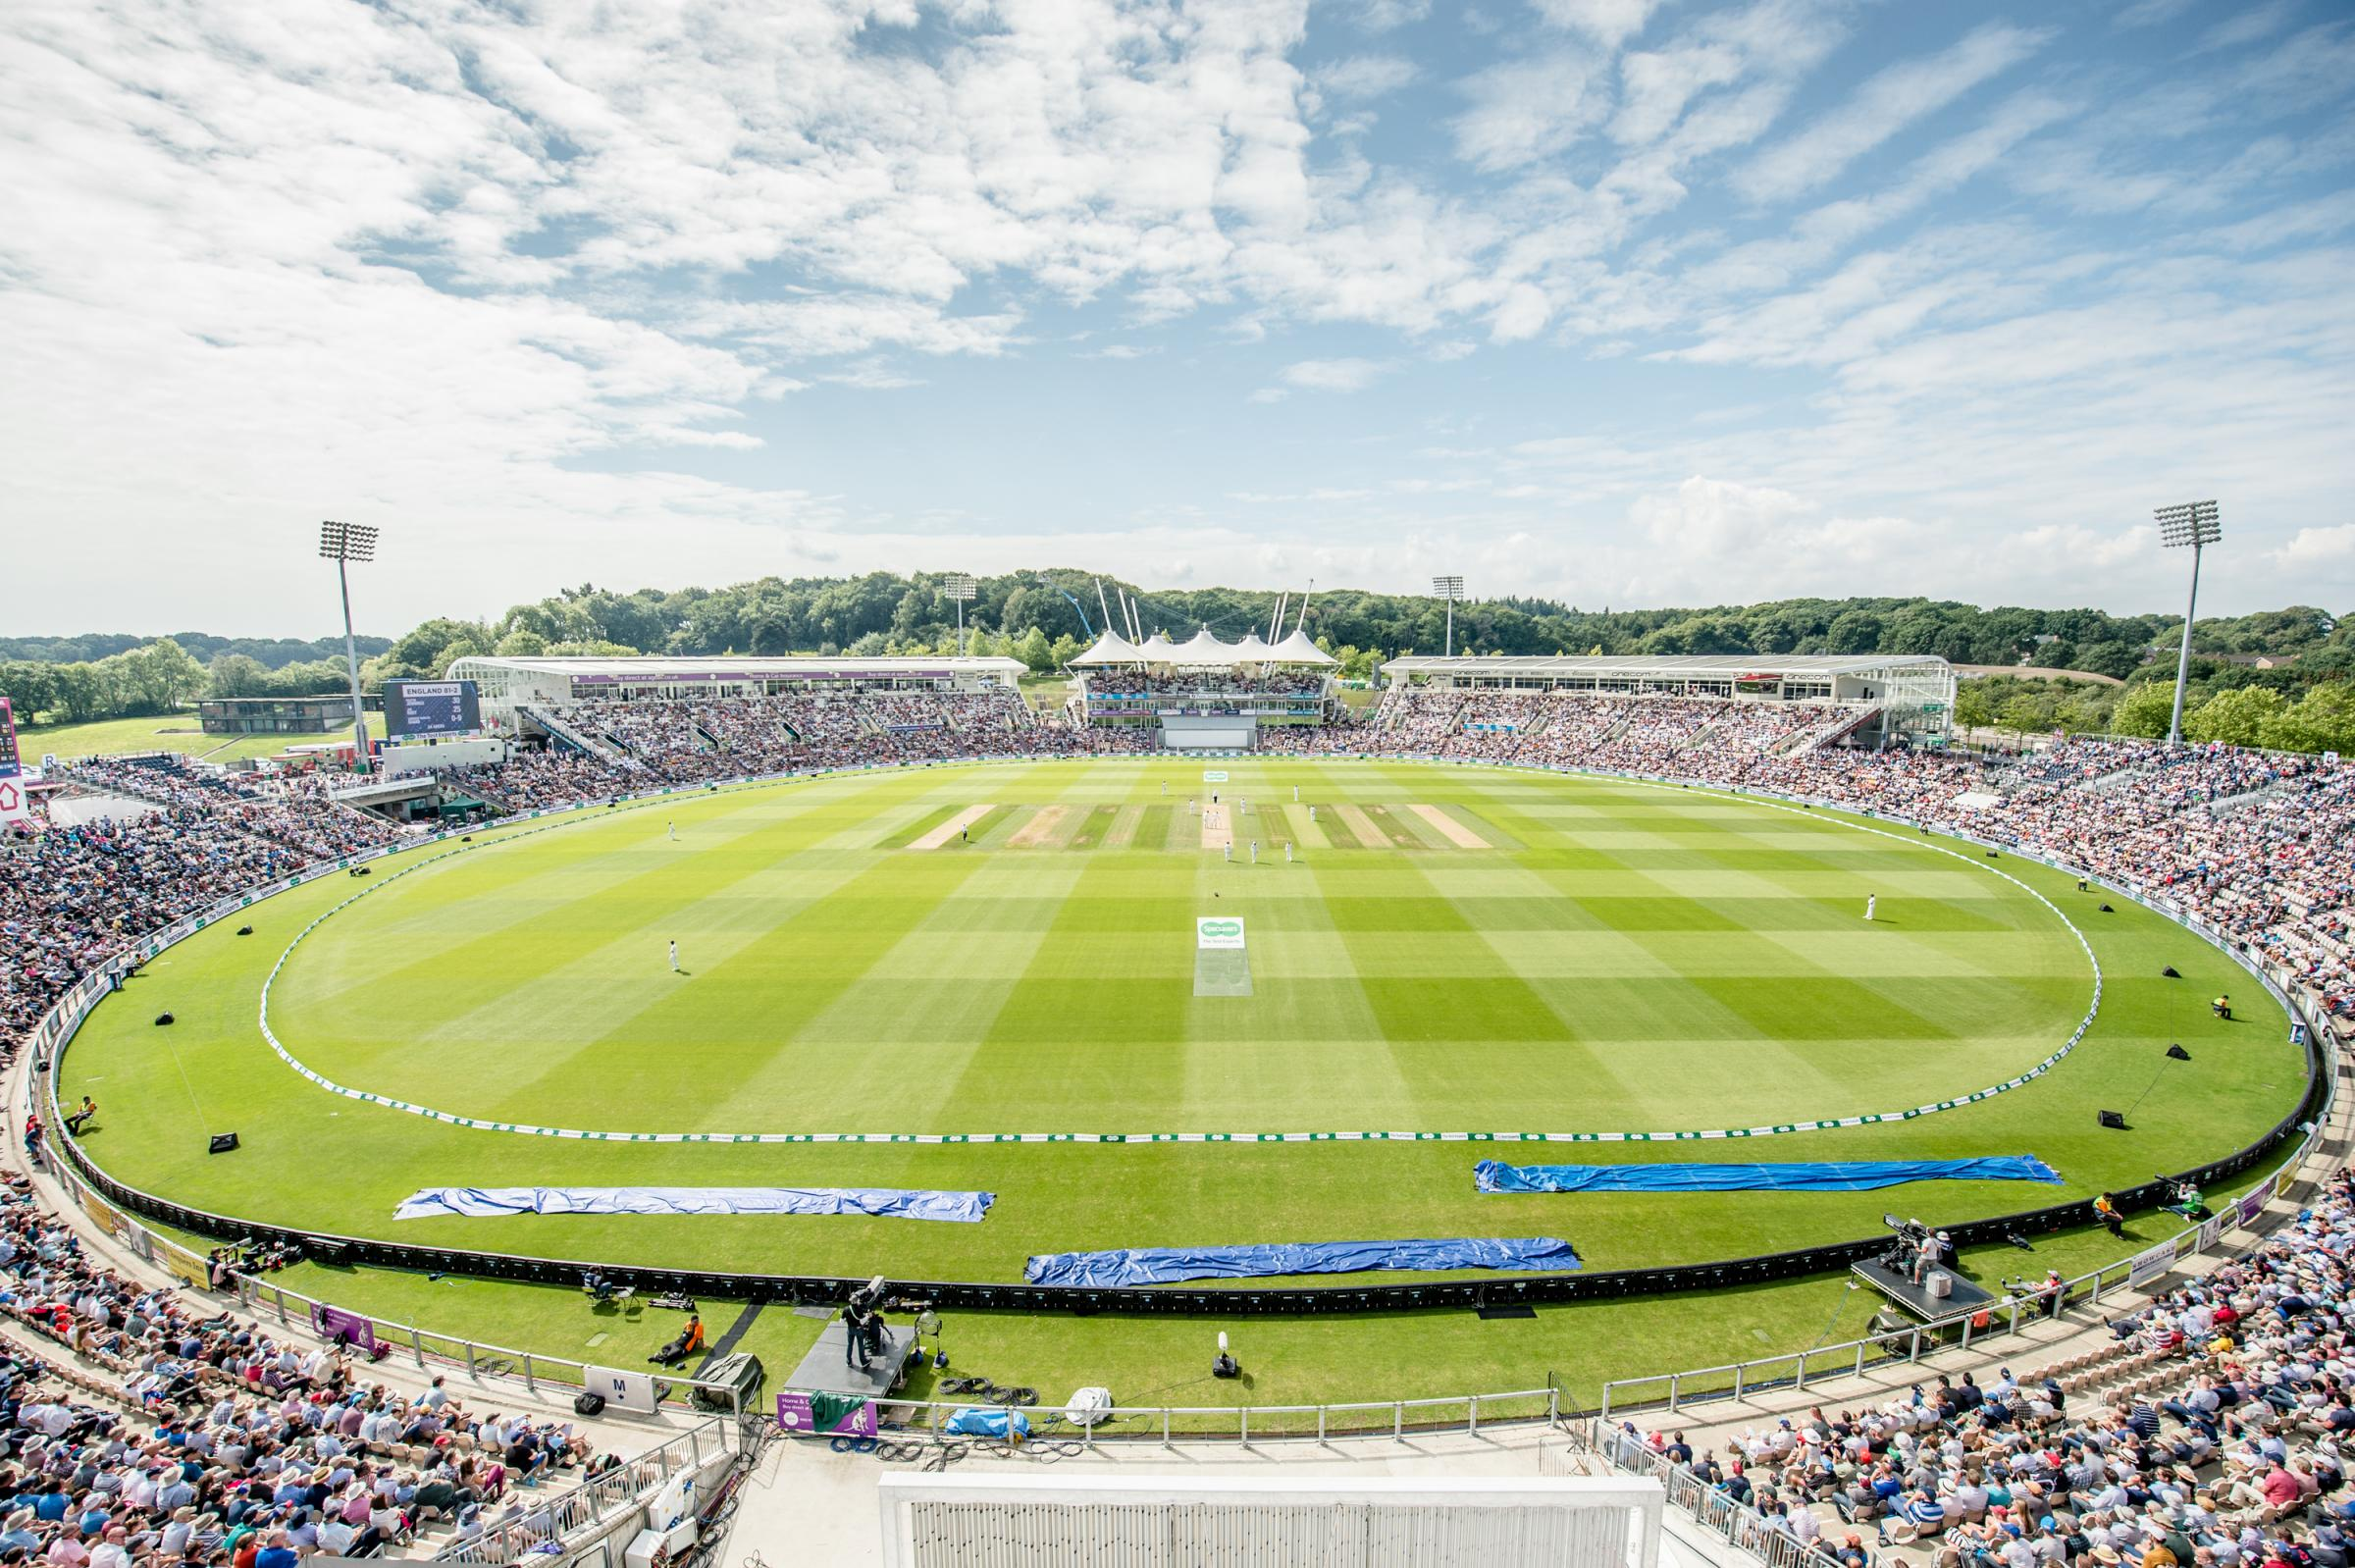 The Ageas Bowl (Dave Vokes Photography)